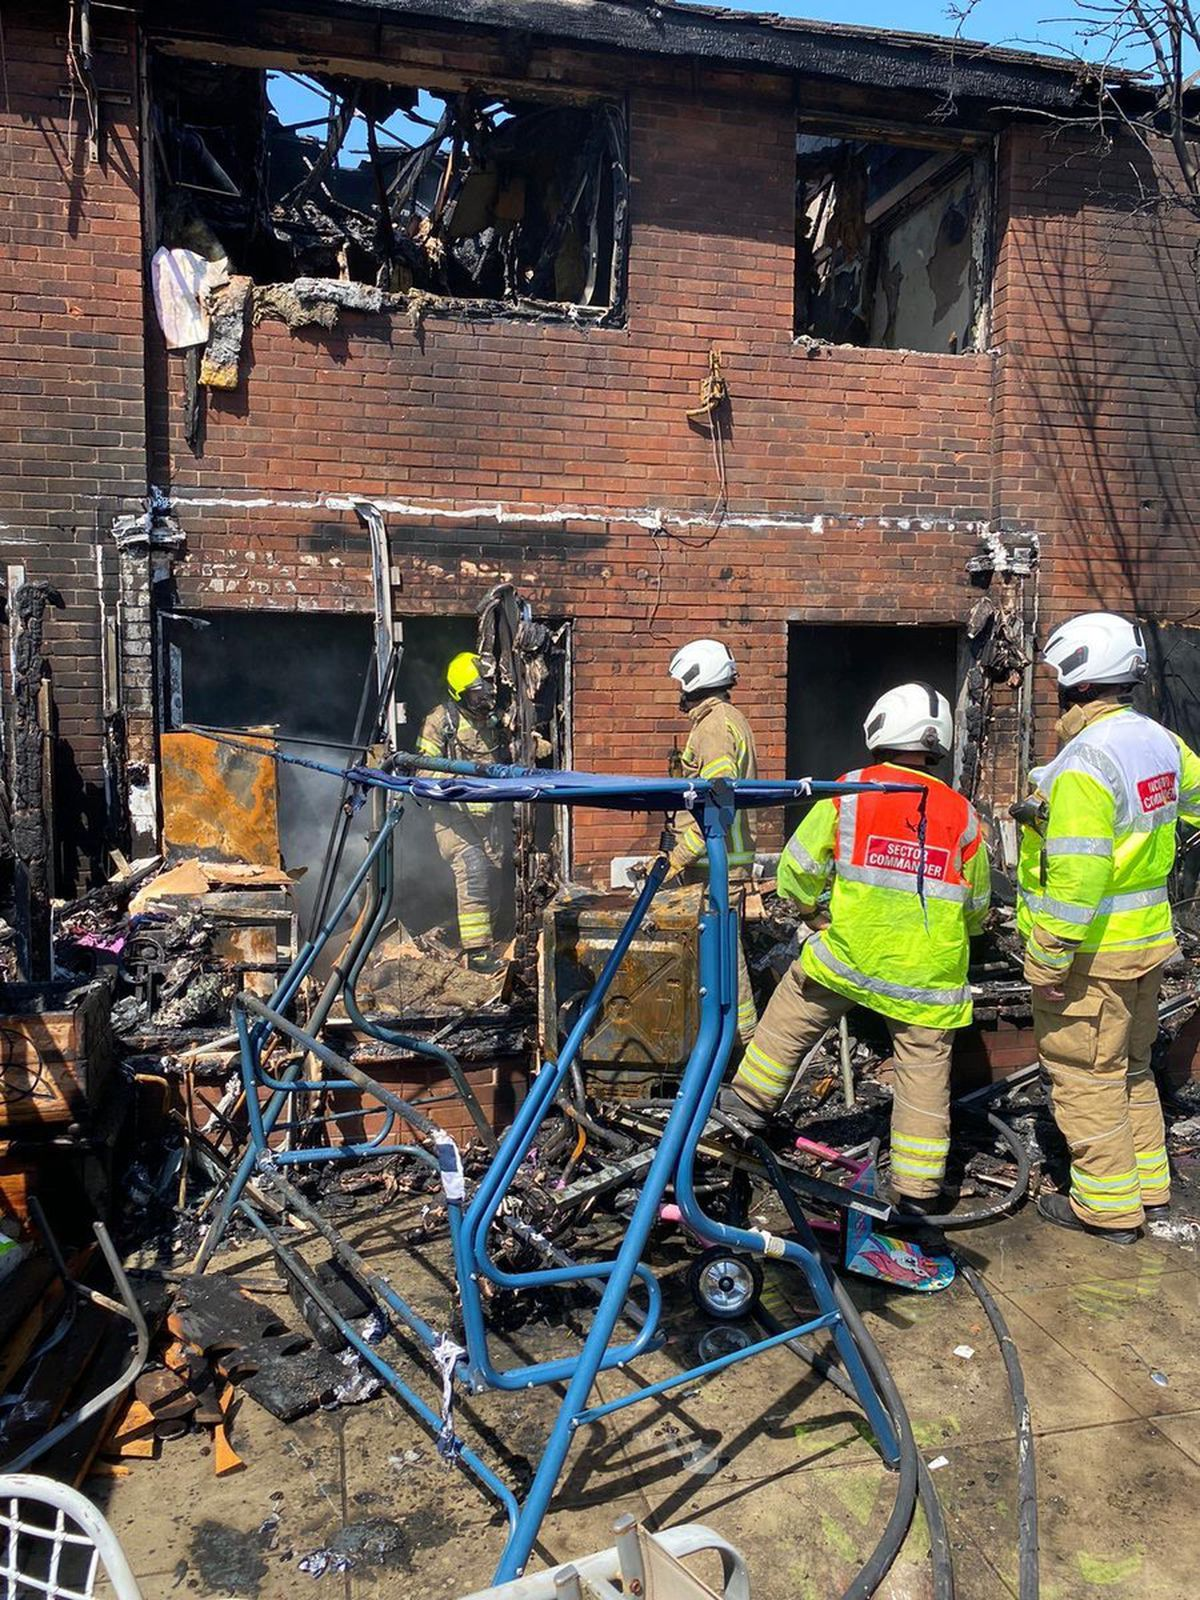 Some of the damage caused by the blaze. Photo: West Midlands Fire Service